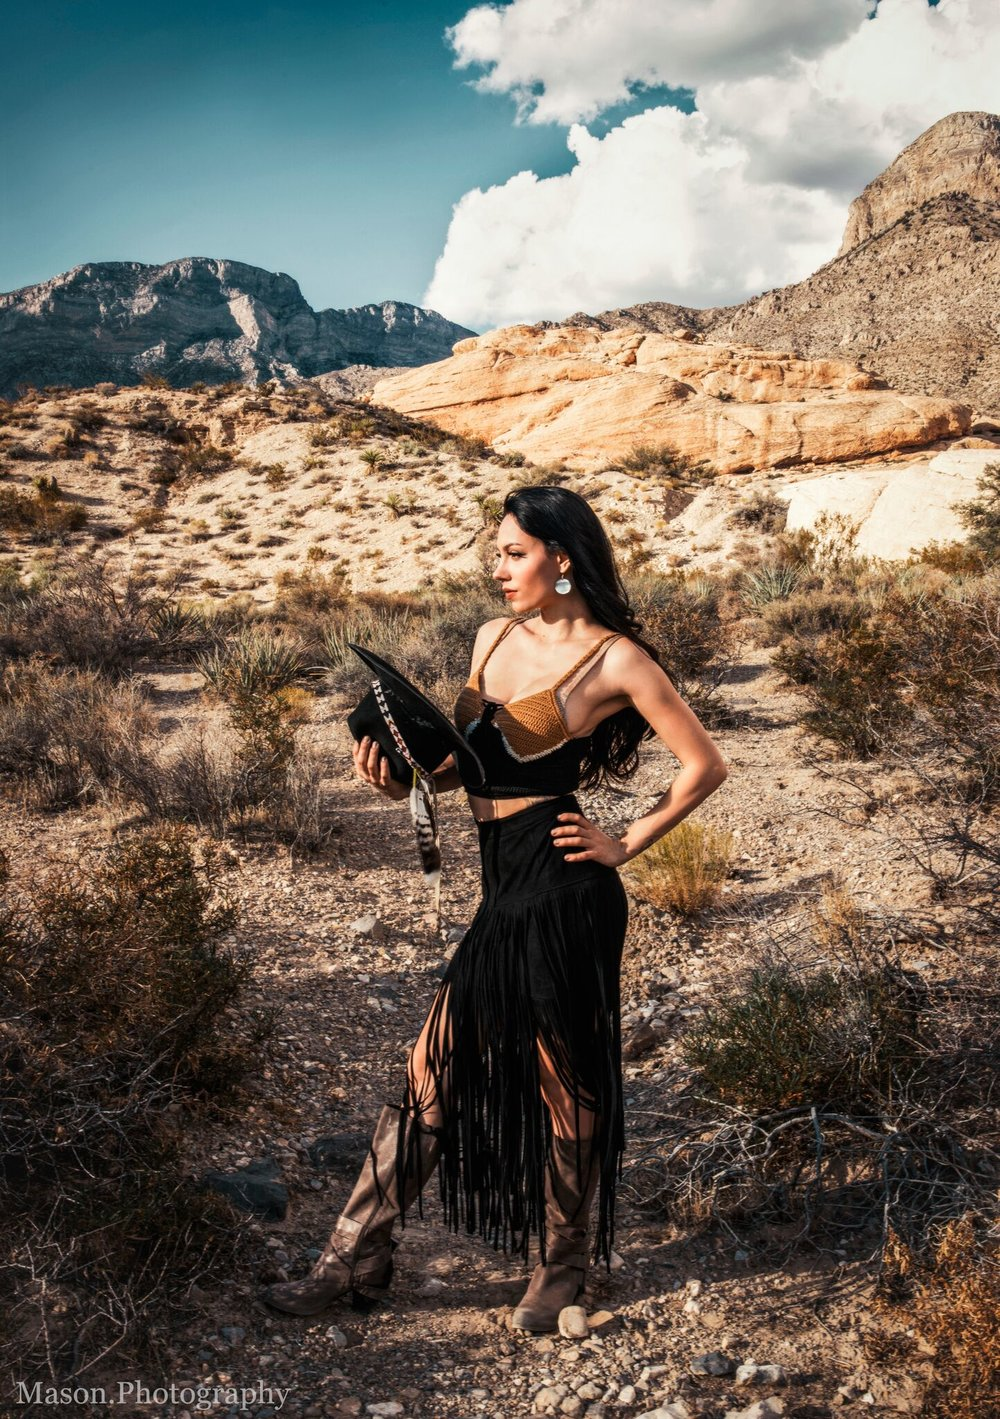 Nevada Desert Fashion Photography Workshop model.jpeg